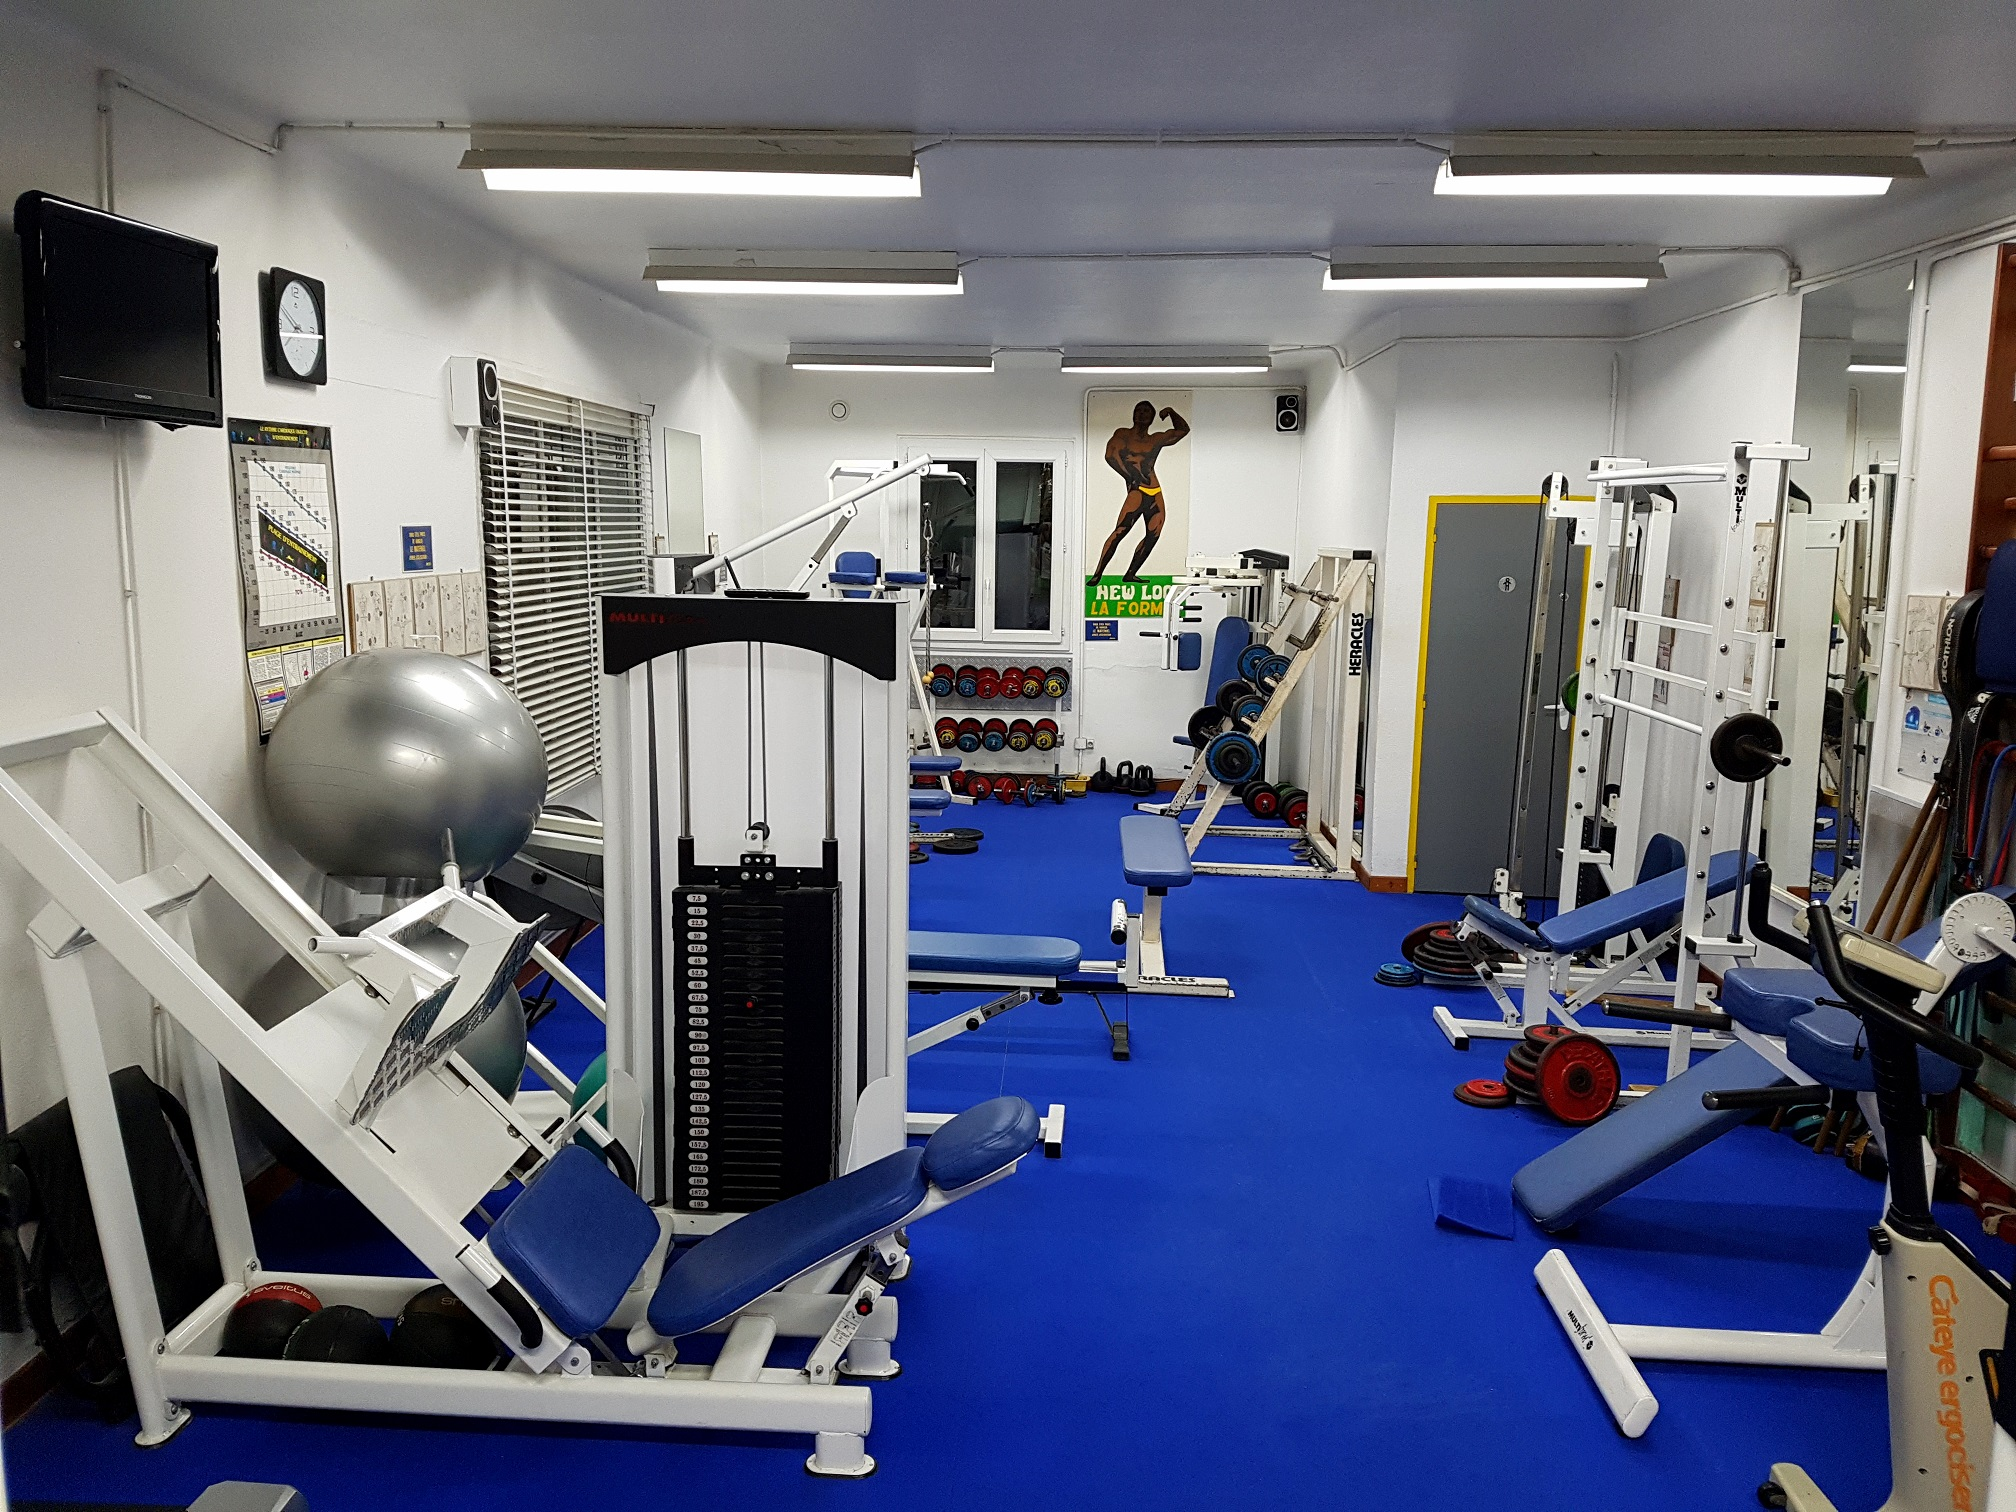 Le club New Look Fitness